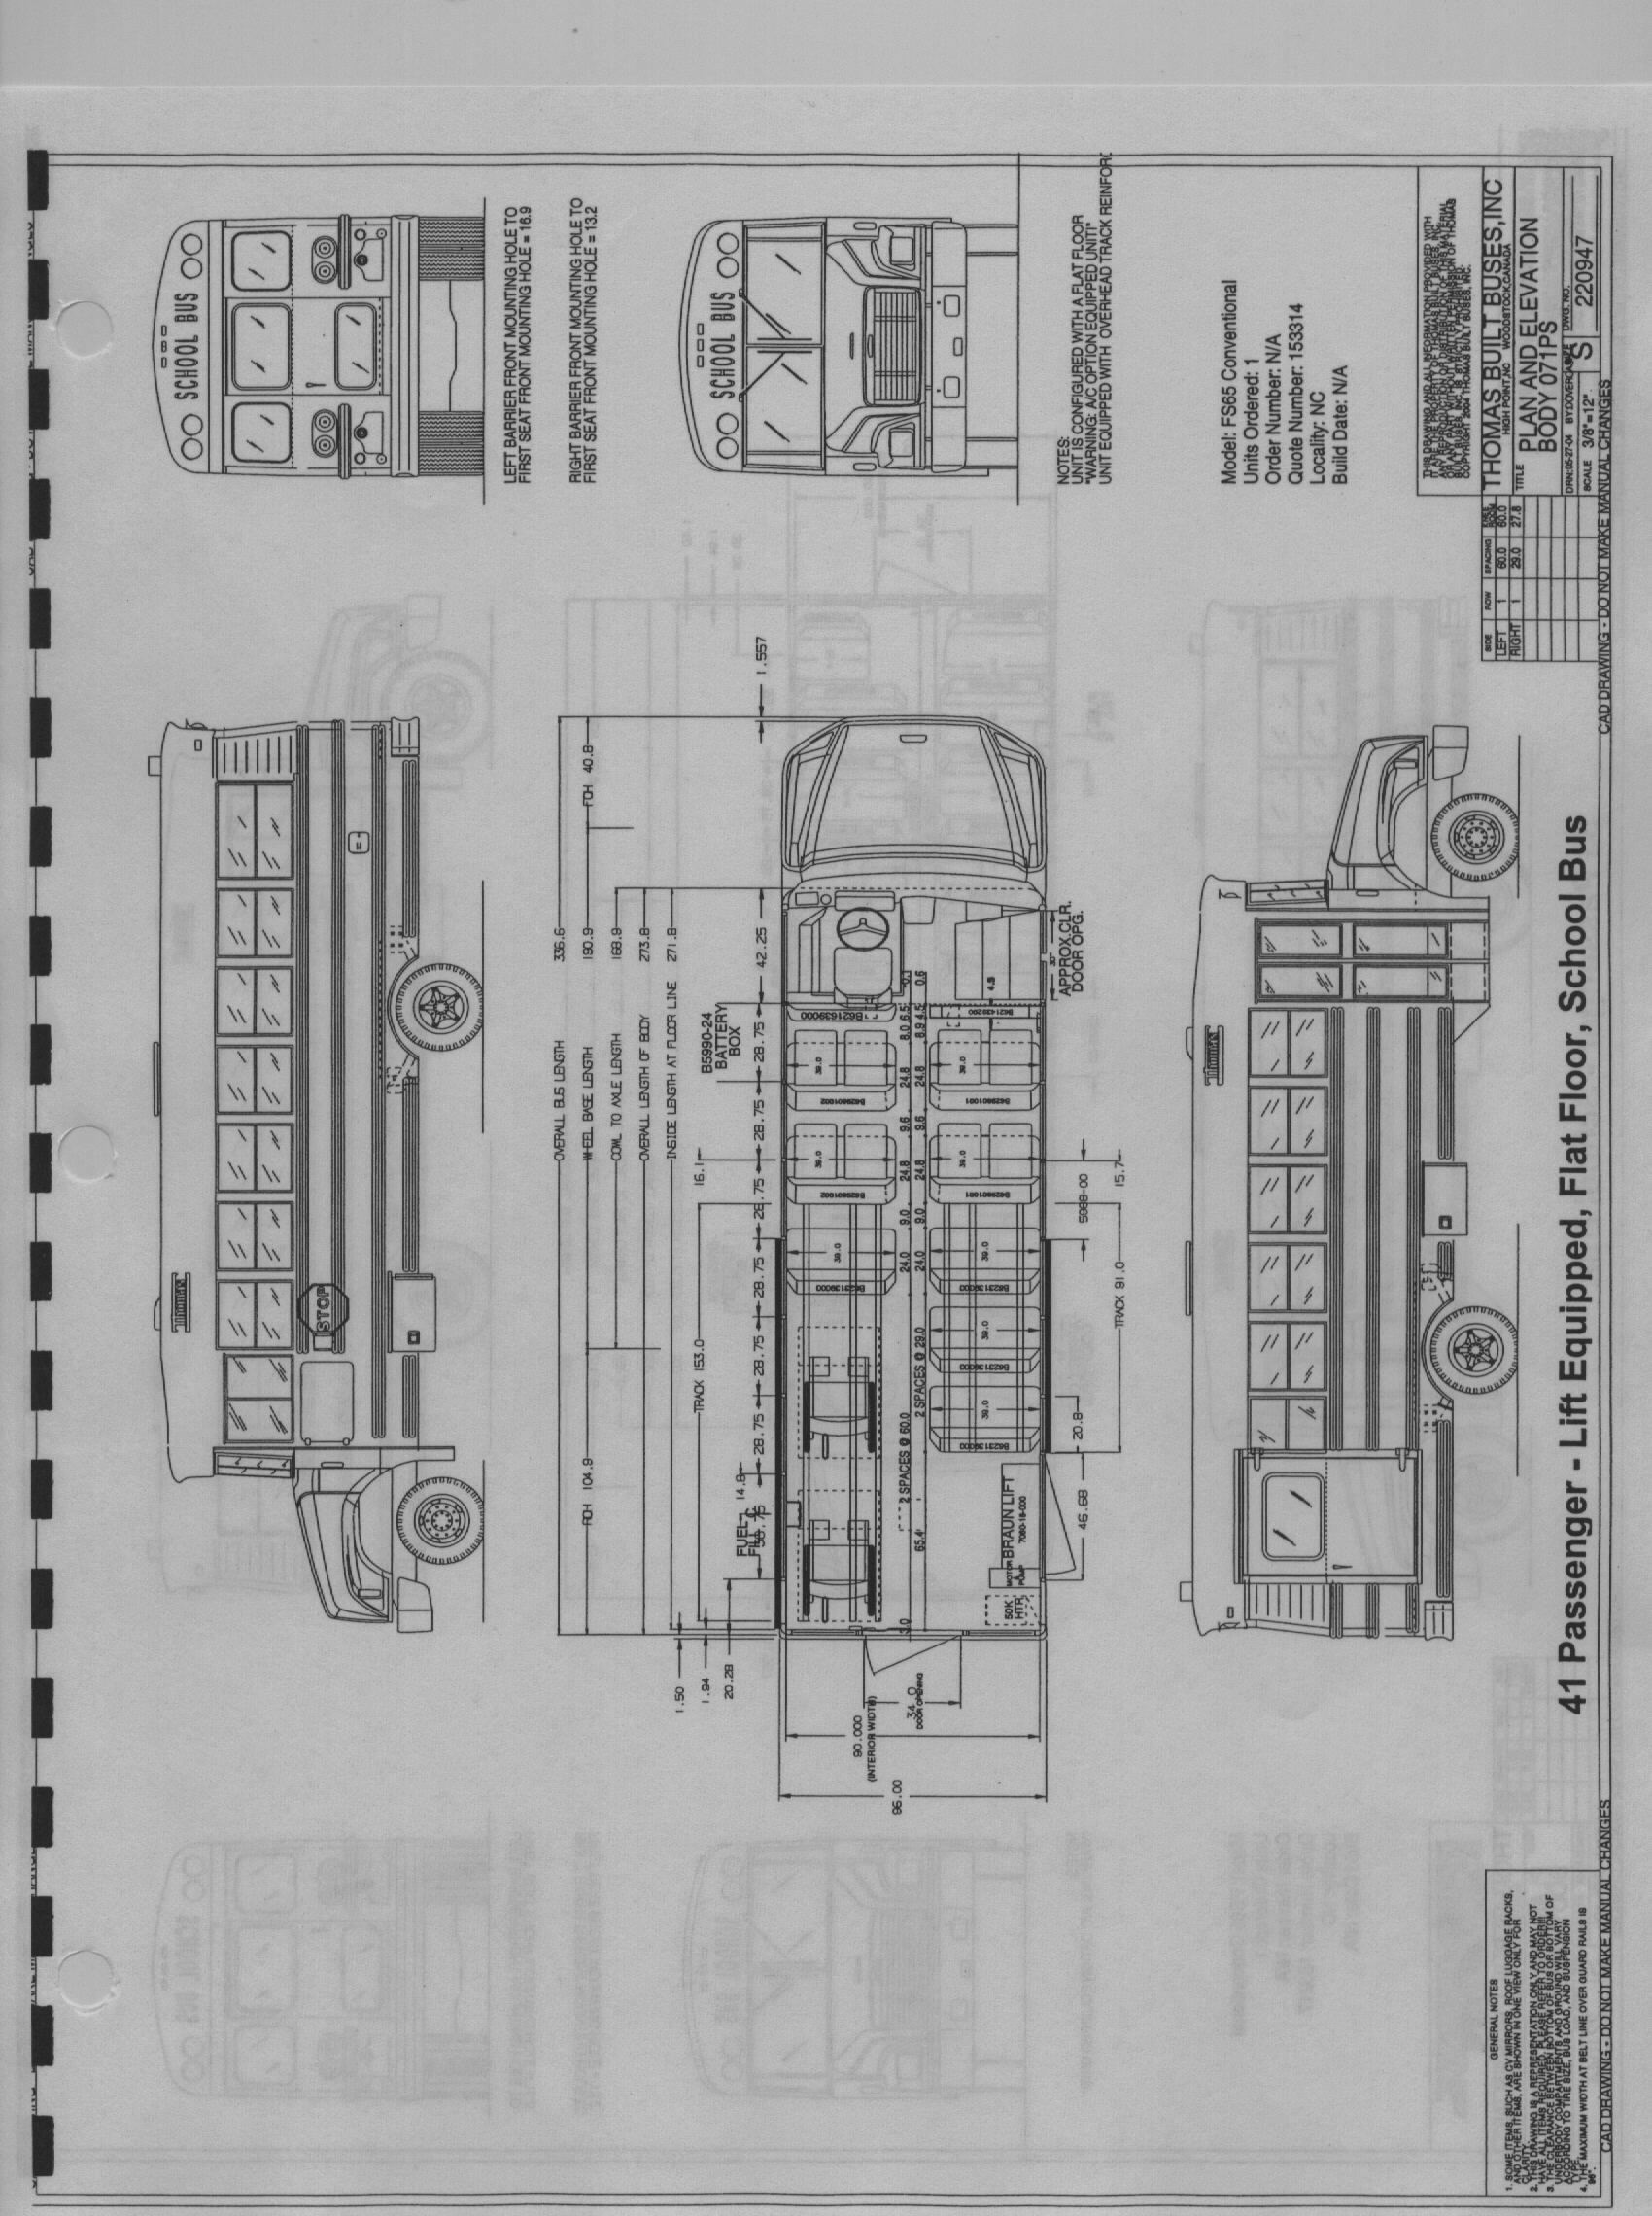 Kenwood Kdc Bt645u Wiring Diagram Kenwood Wiring Harness